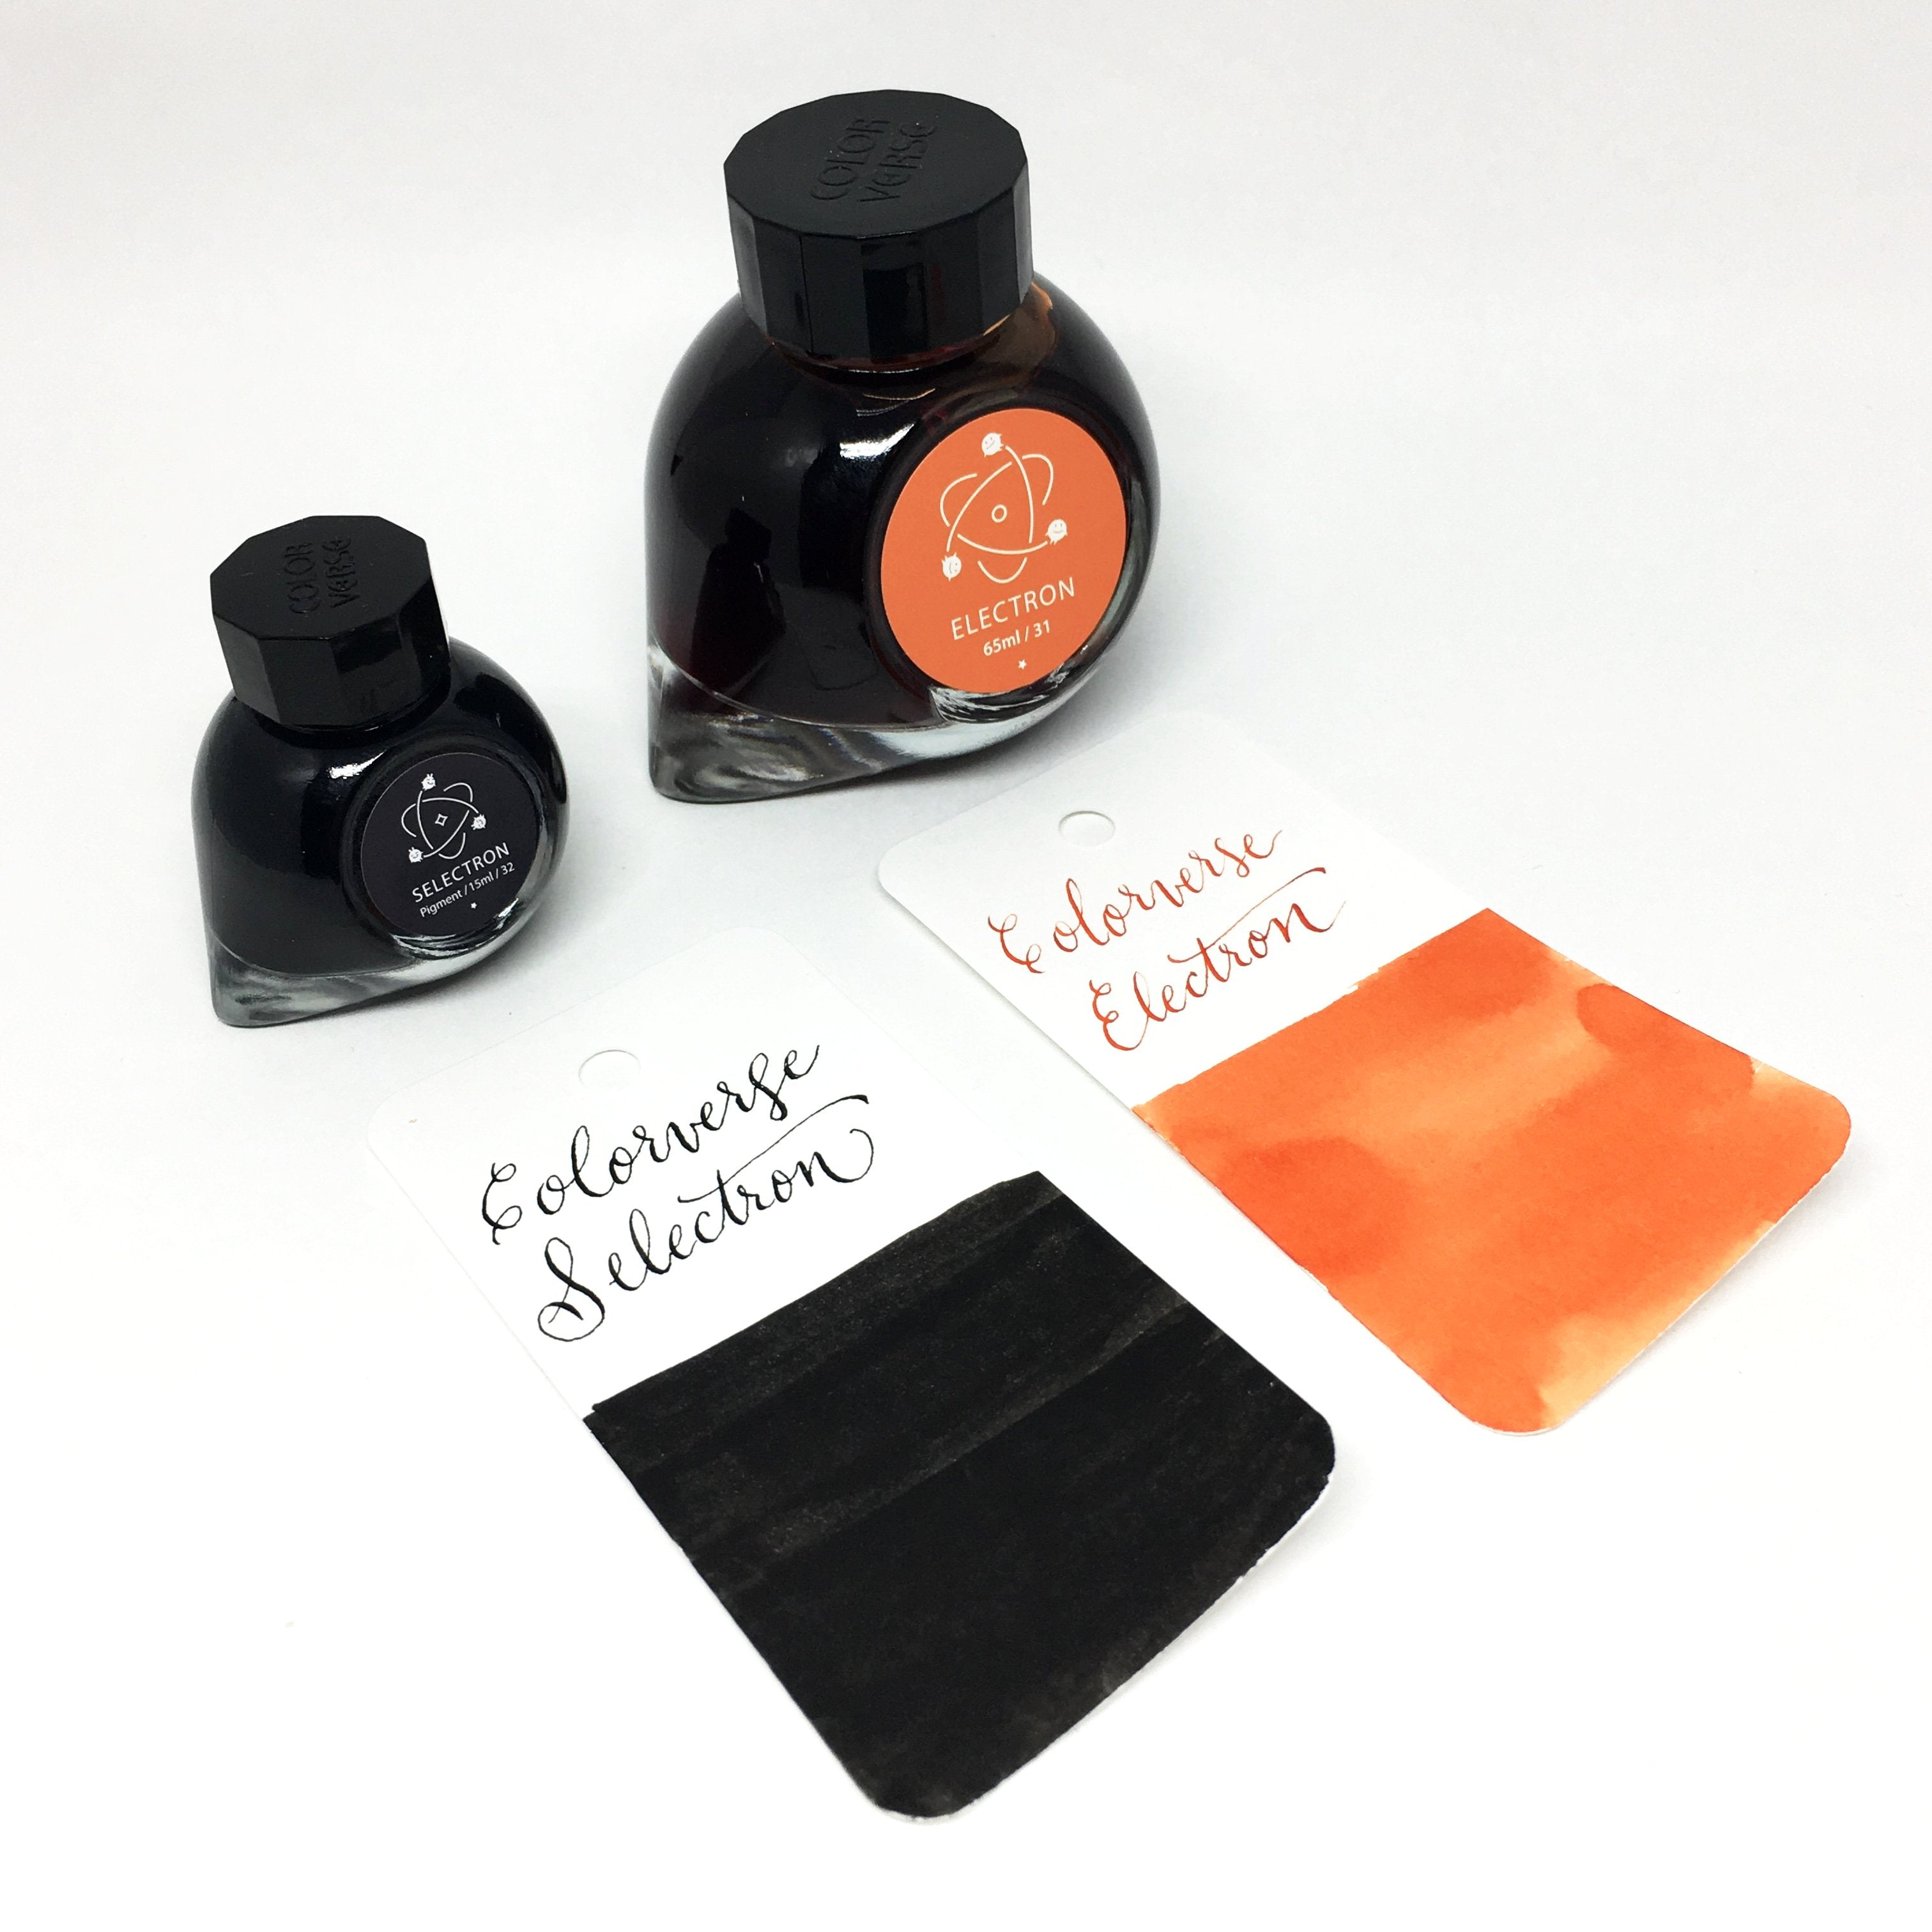 Colorverse Electron Selectron Bottled Ink 65ml + 15ml